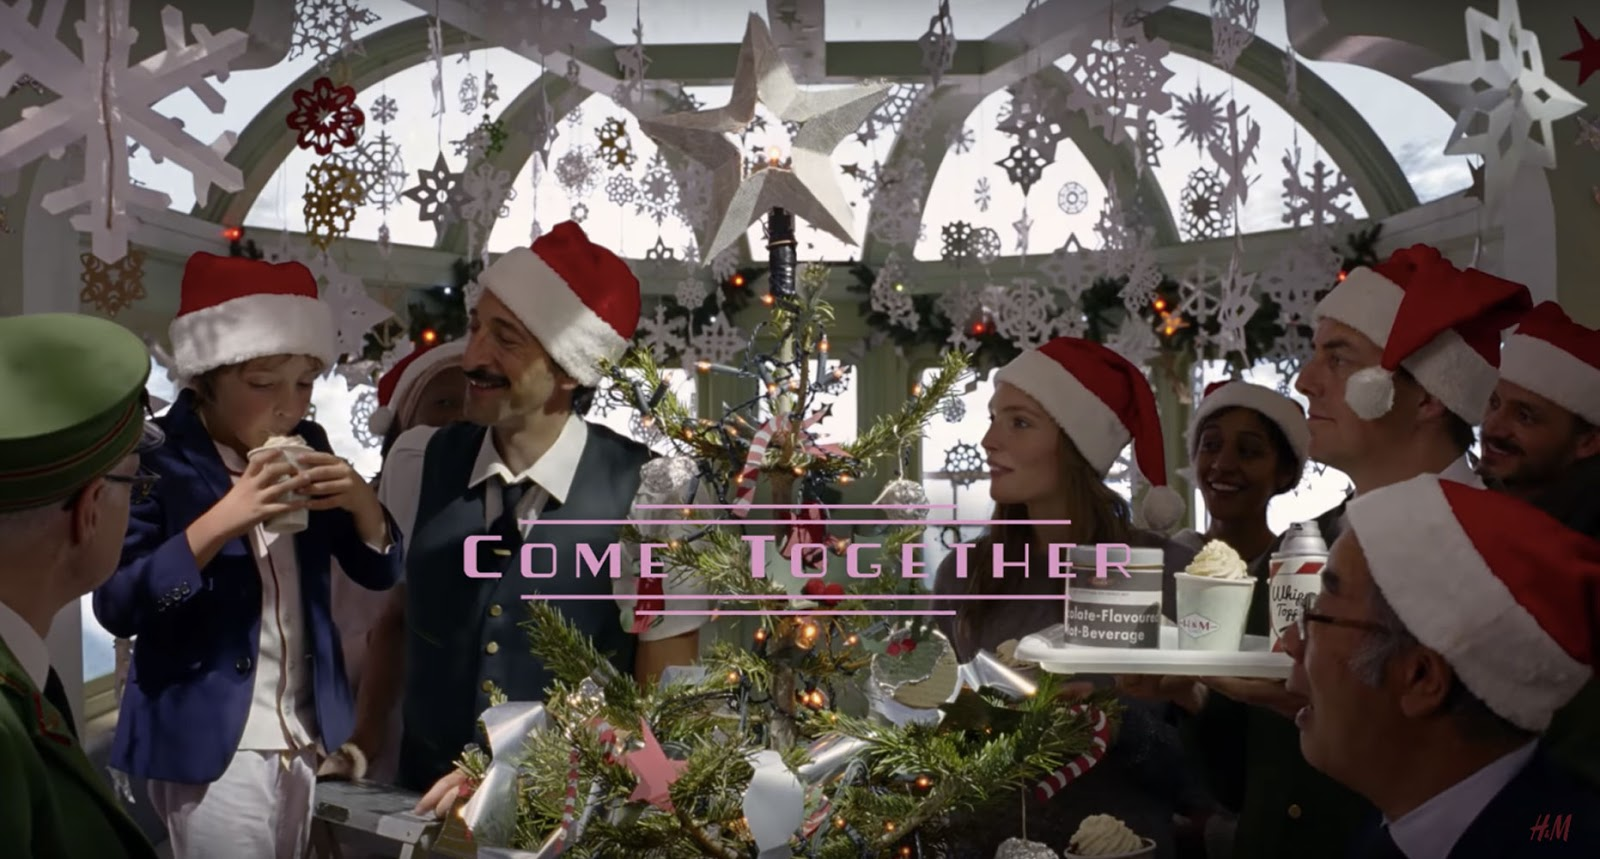 COME TOGETHER - H&M - WES ANDERSON